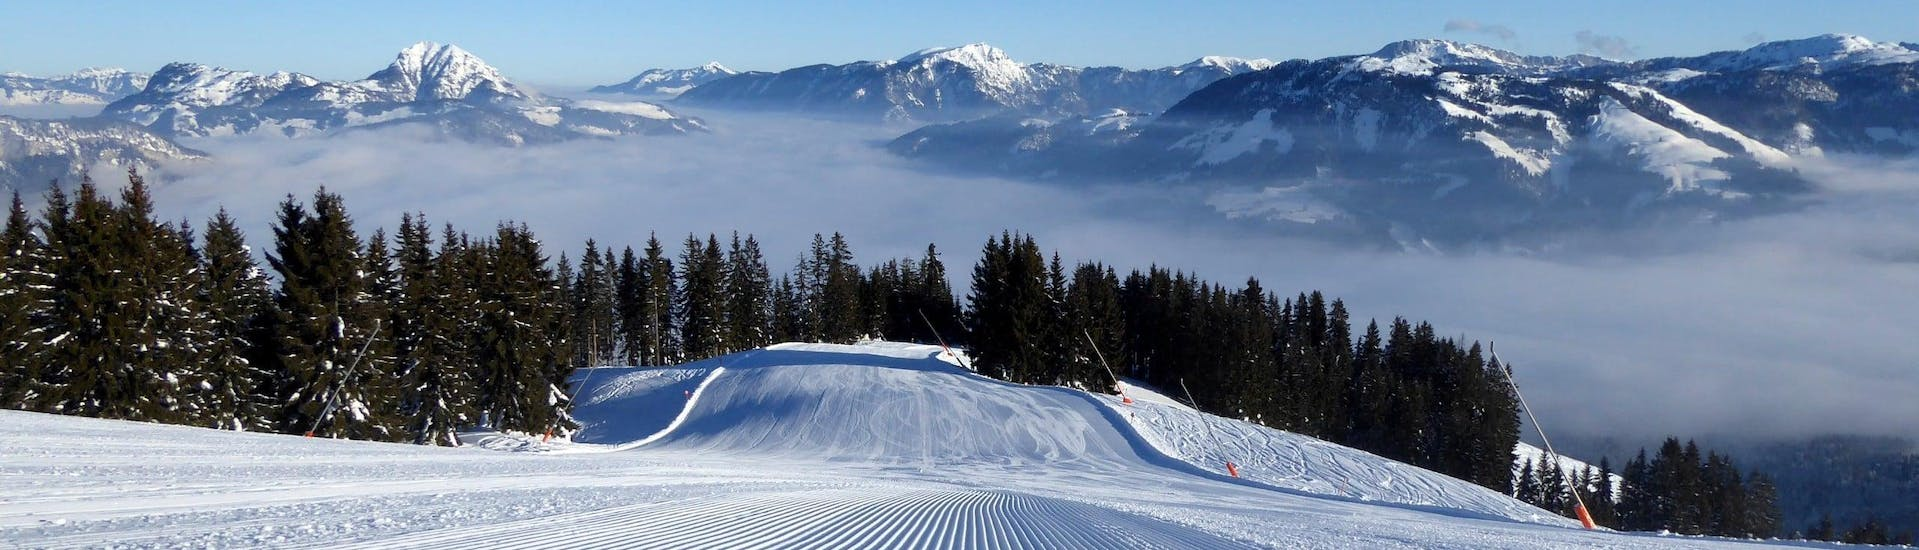 View over the sunny mountain landscape while learning to ski with the ski schools in St. Johann in Tirol.